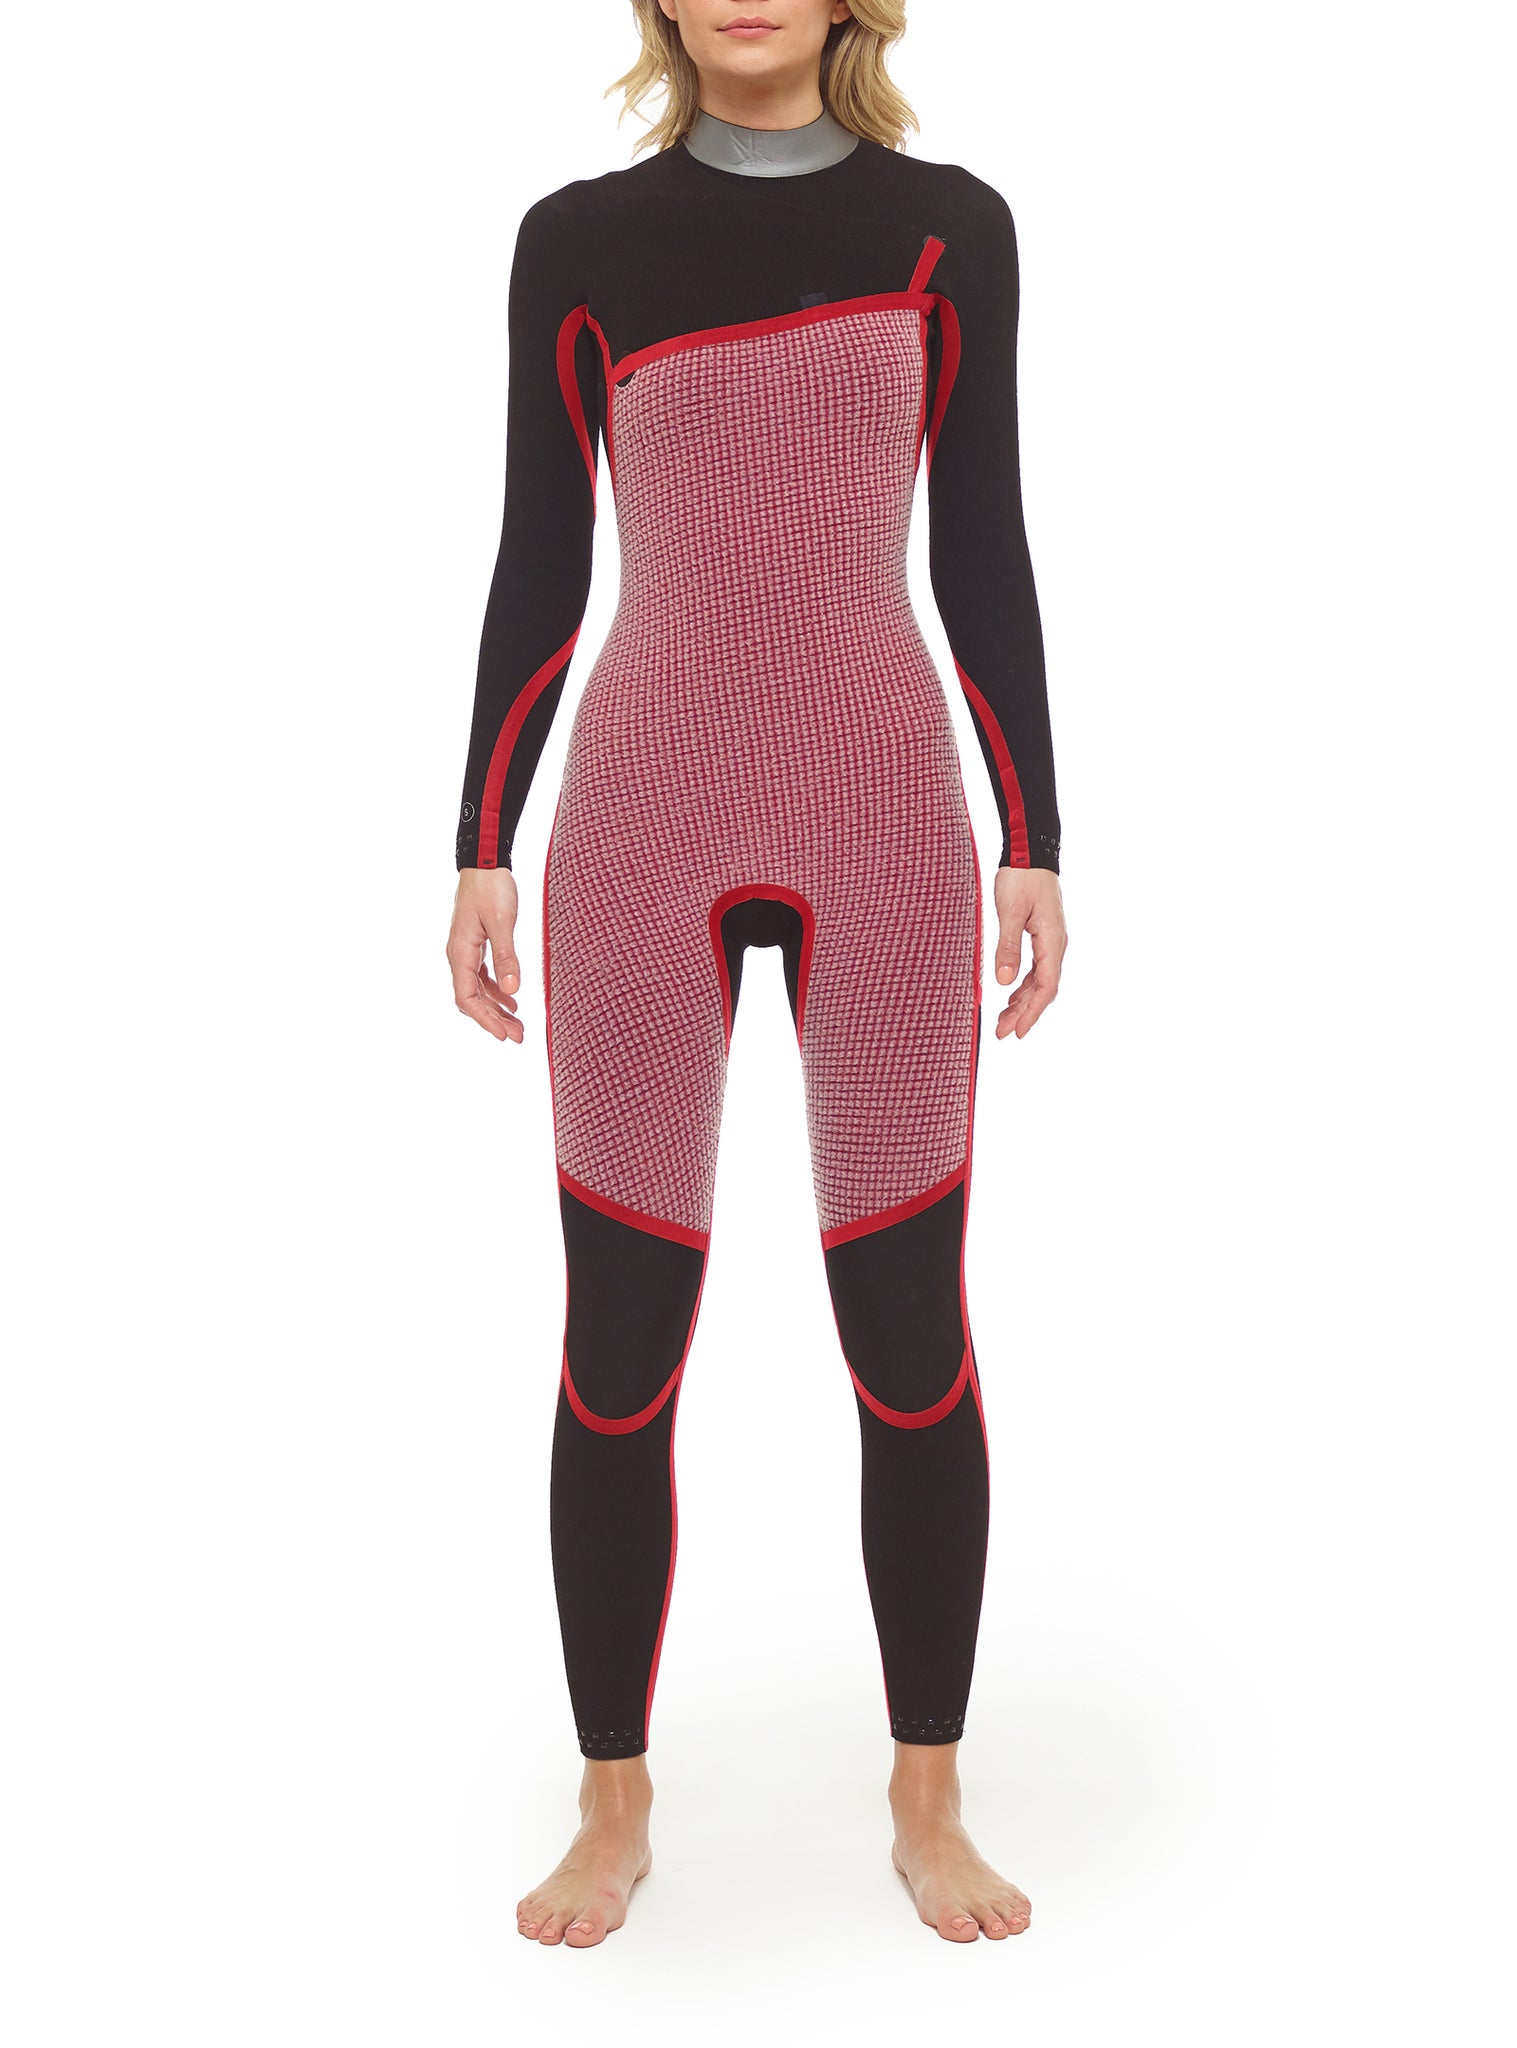 Combinaisons De Surf Femme Competition Yulex 4/3 Zipperless Noir